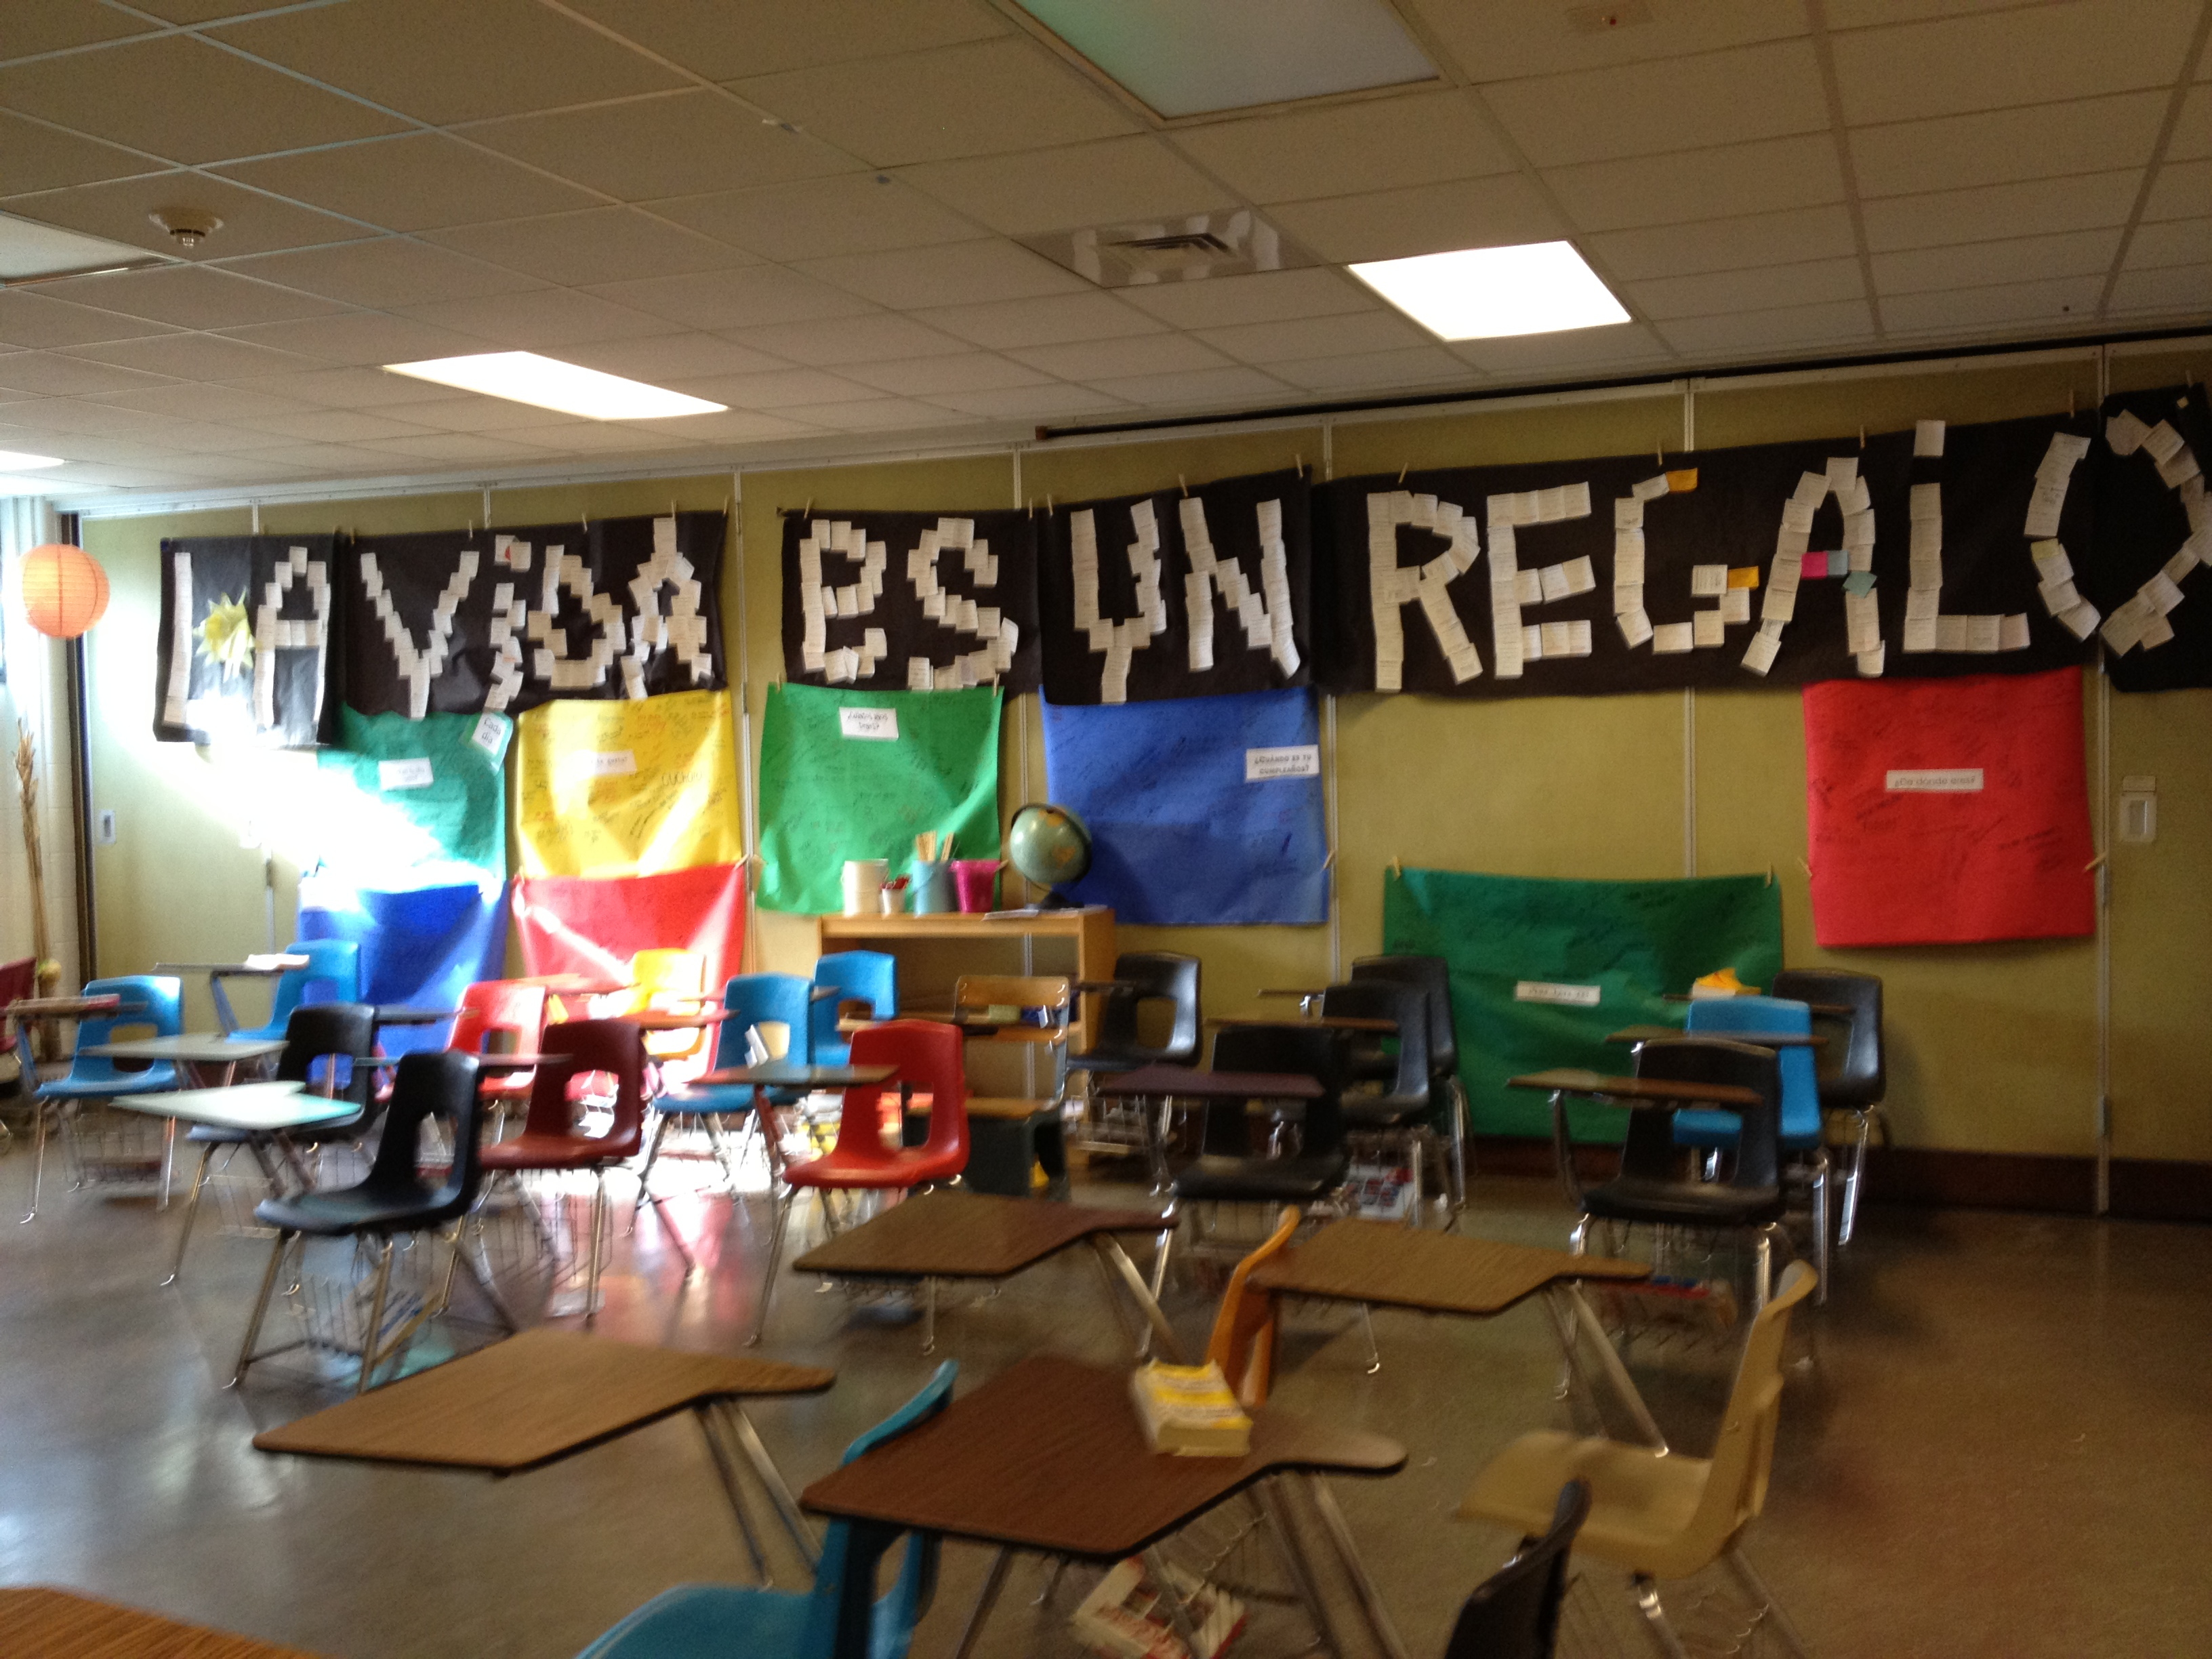 Cheap Spanish Classroom Decorations ~ Decorate your classroom with a new phrase and let them